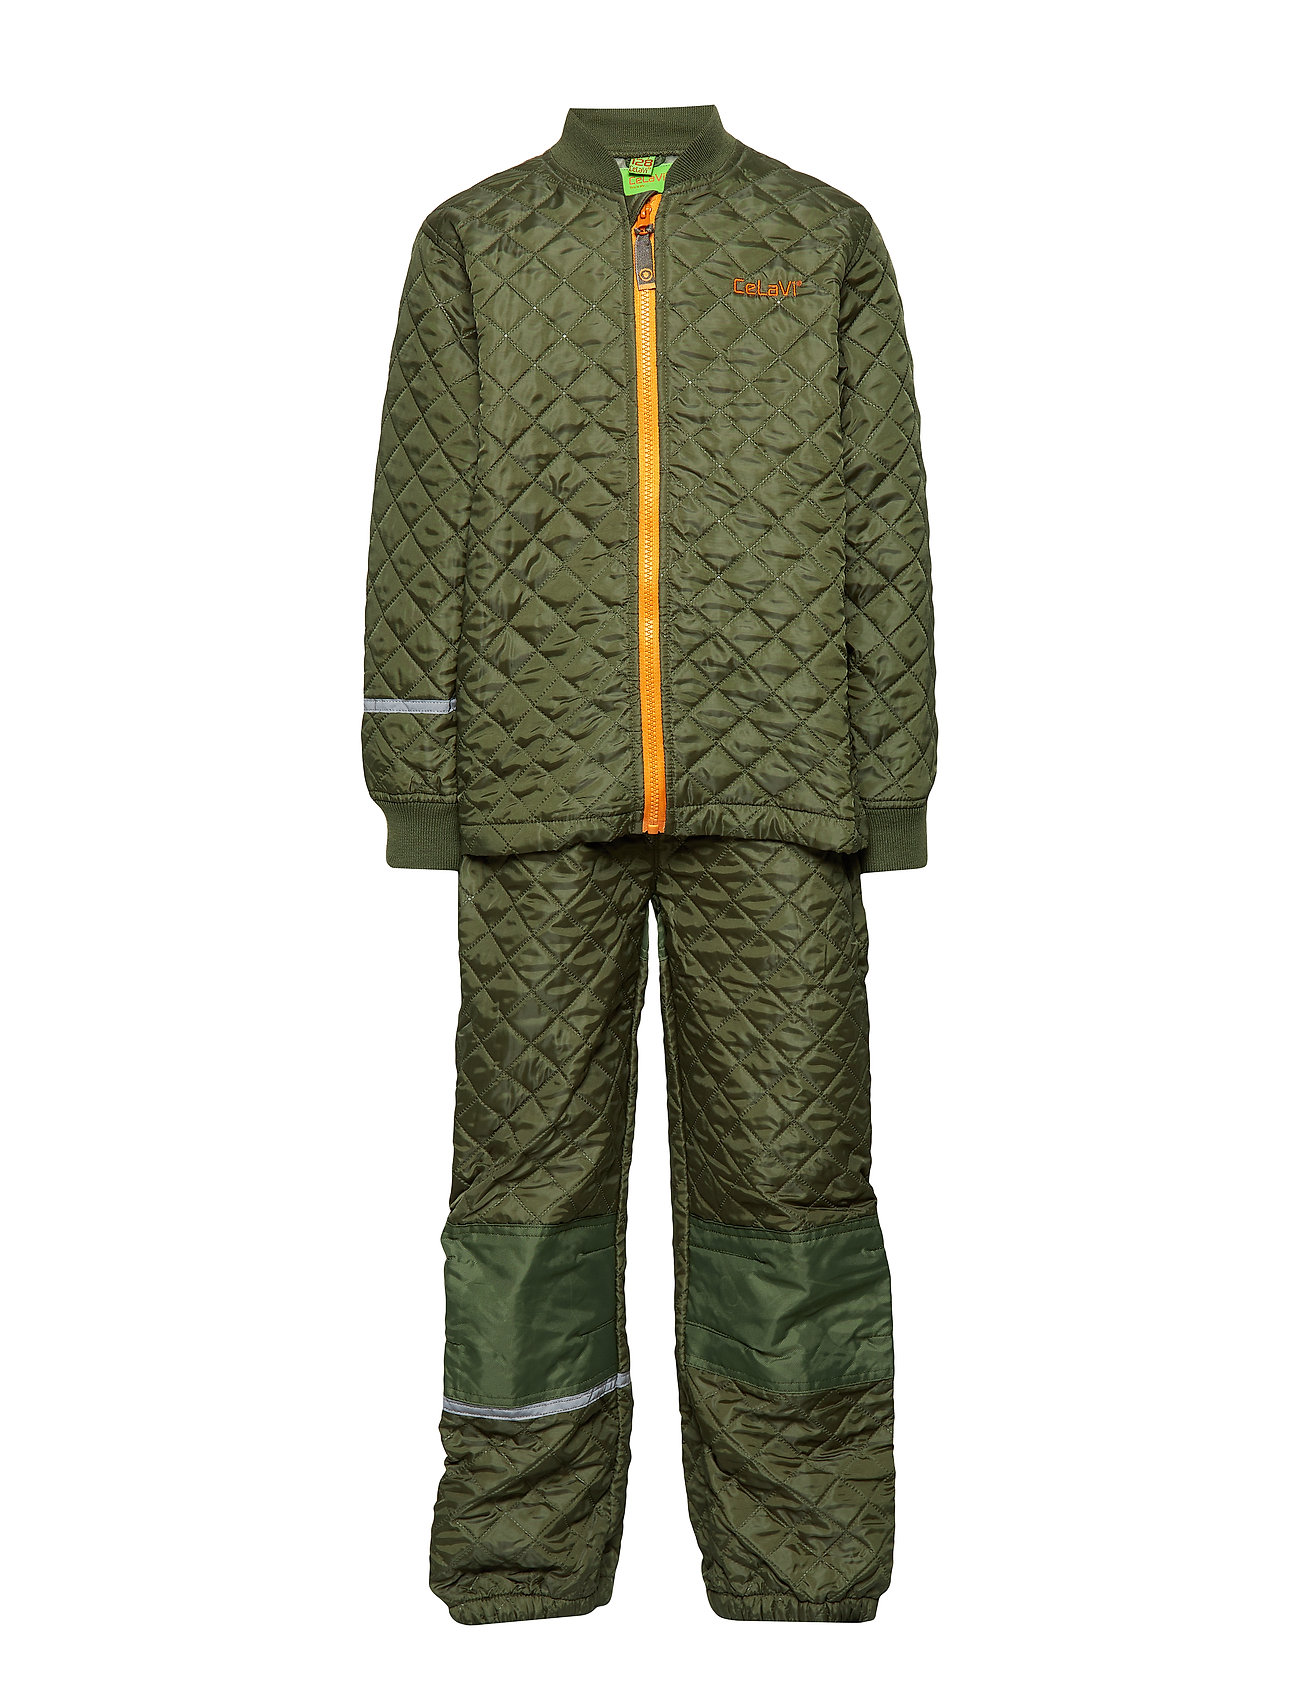 Image of Thermal Set -Solid Outerwear Thermo Outerwear Grøn CeLaVi (3054508753)